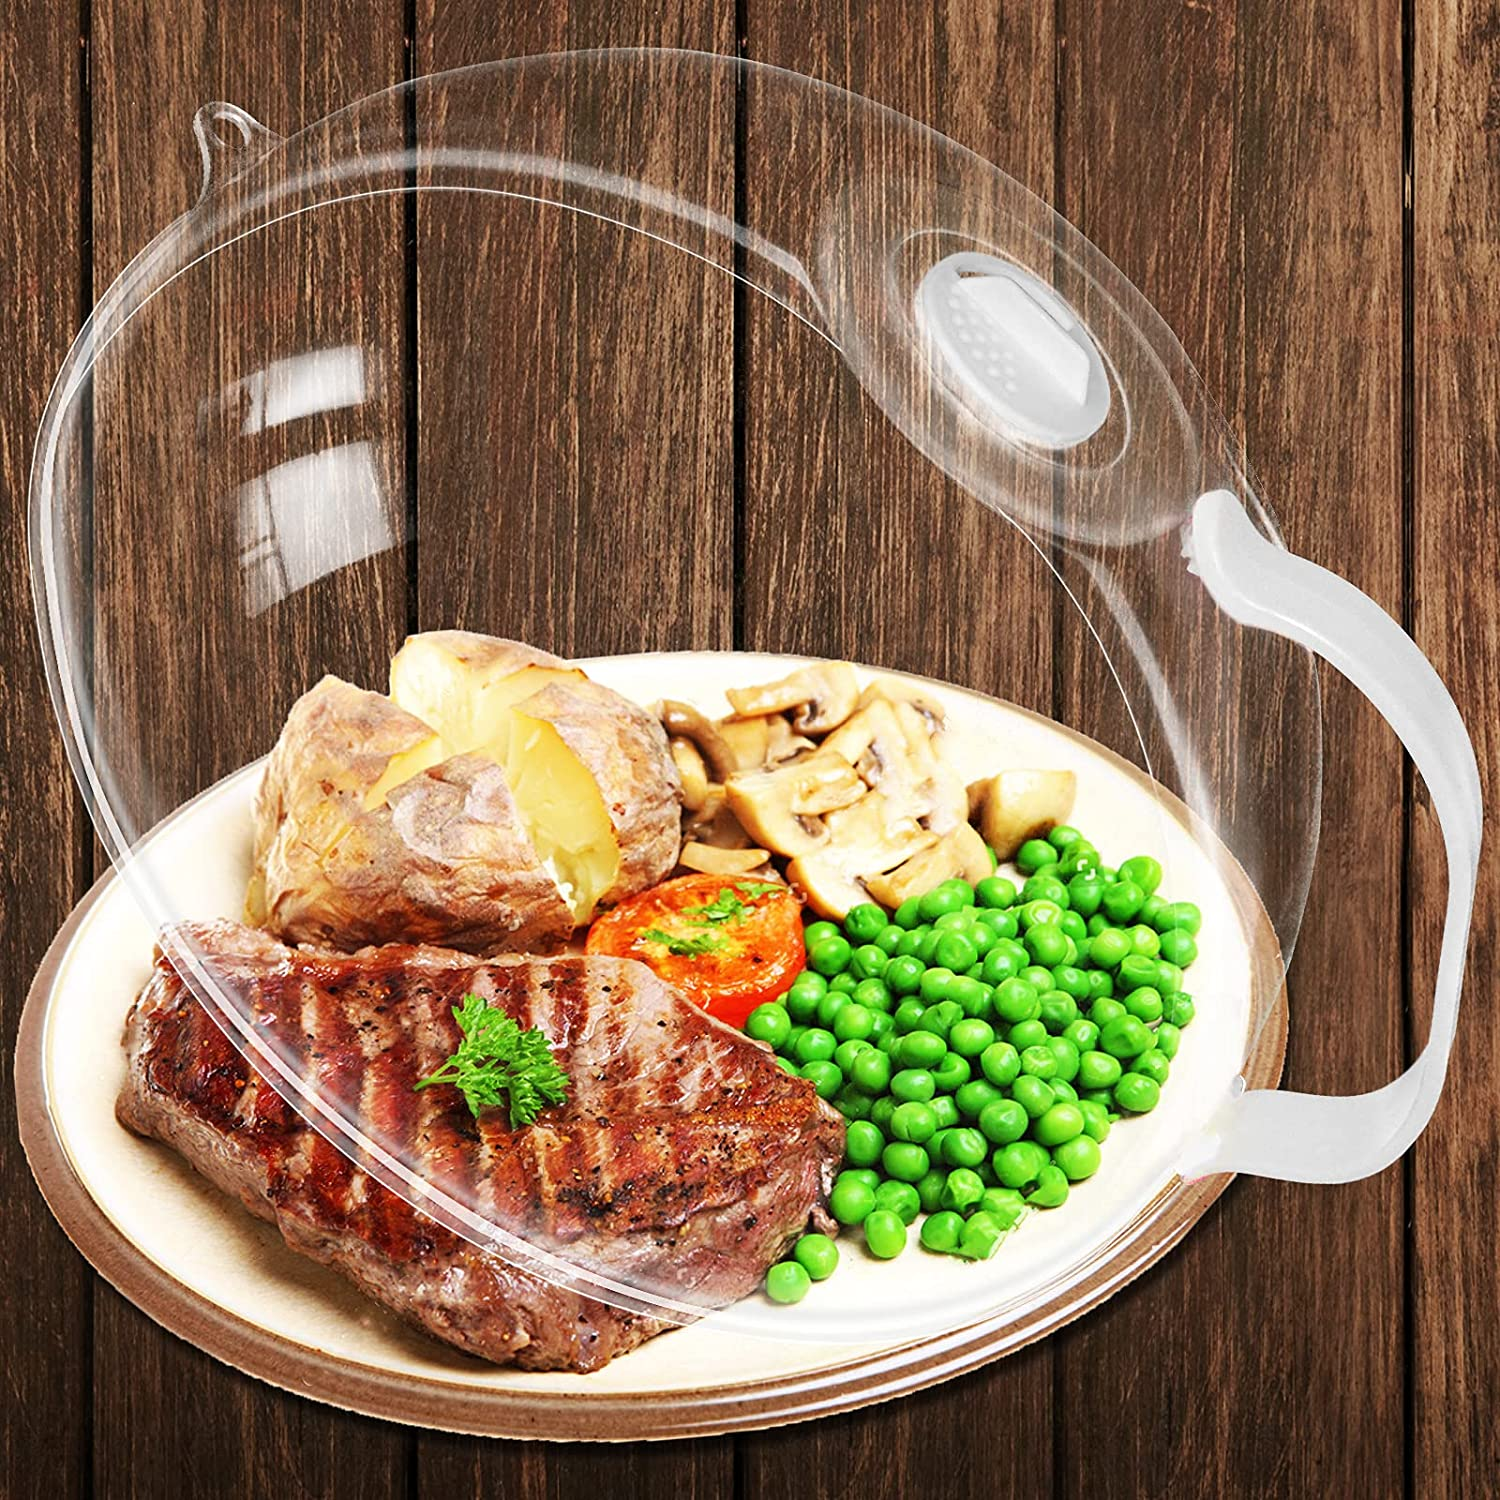 Microwave Splatter Cover,Microwave Cover for Food,Microwave Plate Cover Guard Lid with Handle,Hanging Hole and Adjustable Steam Vents Microwave Oven Cleaner,10.5 Inch Transparent & BPA Free